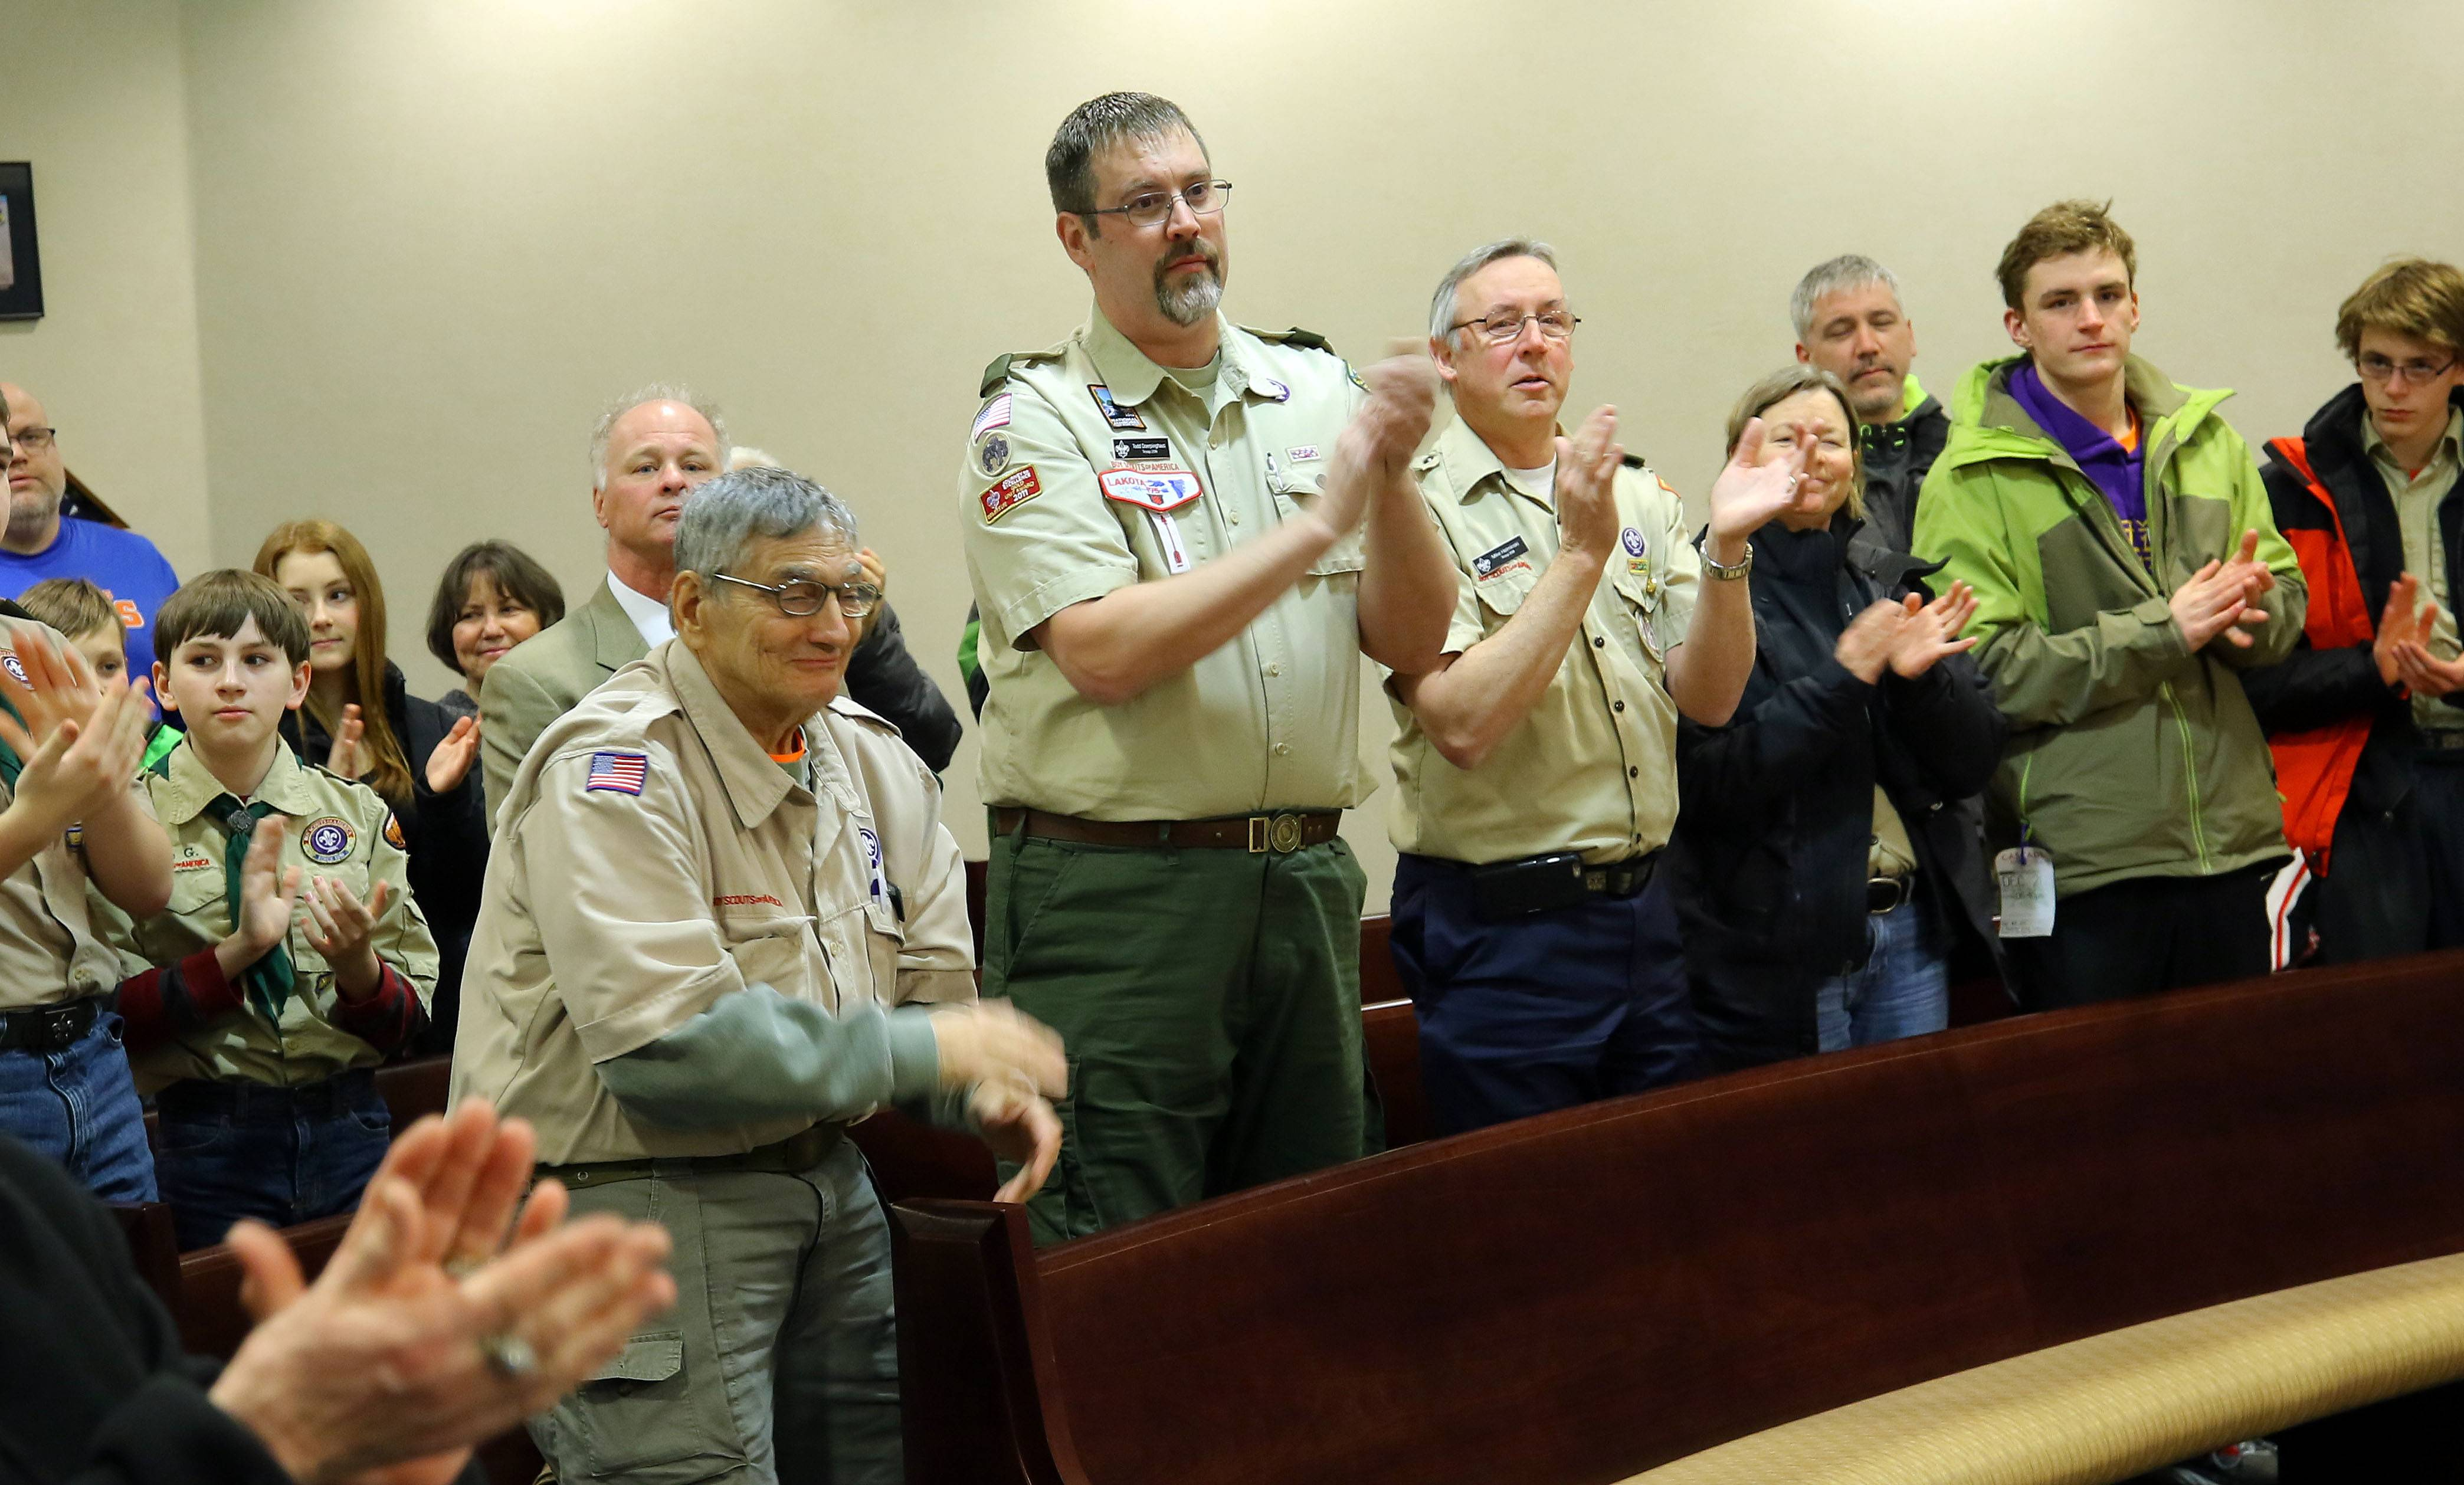 Audience members, including members of Boy Scout Troop 209 in Palatine, clap after Tyler Matuszczak of Hoffman Estates receives a Citizen Lifesaving Award at Monday's Hoffman Estates village board meeting.